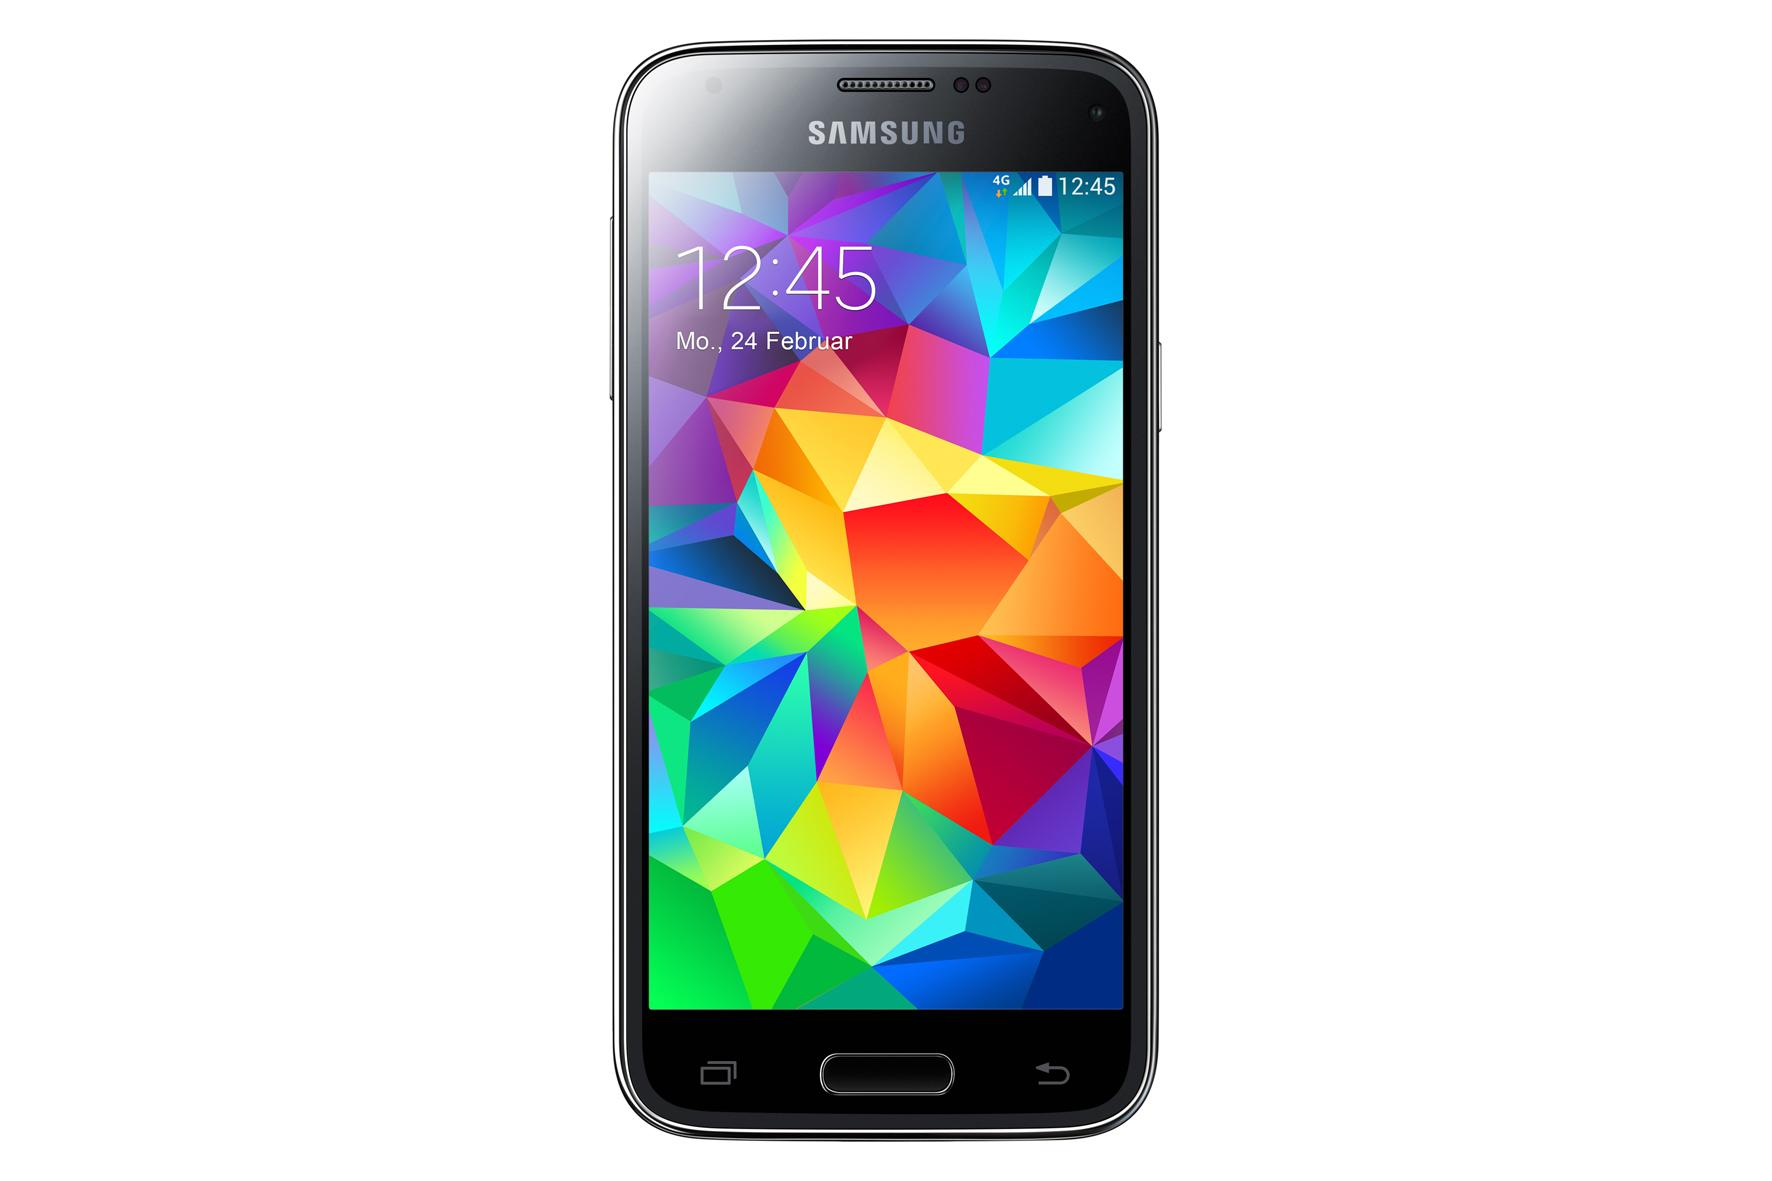 galaxy s5 mini ab sofort f r rund 400 euro verf gbar all about samsung. Black Bedroom Furniture Sets. Home Design Ideas